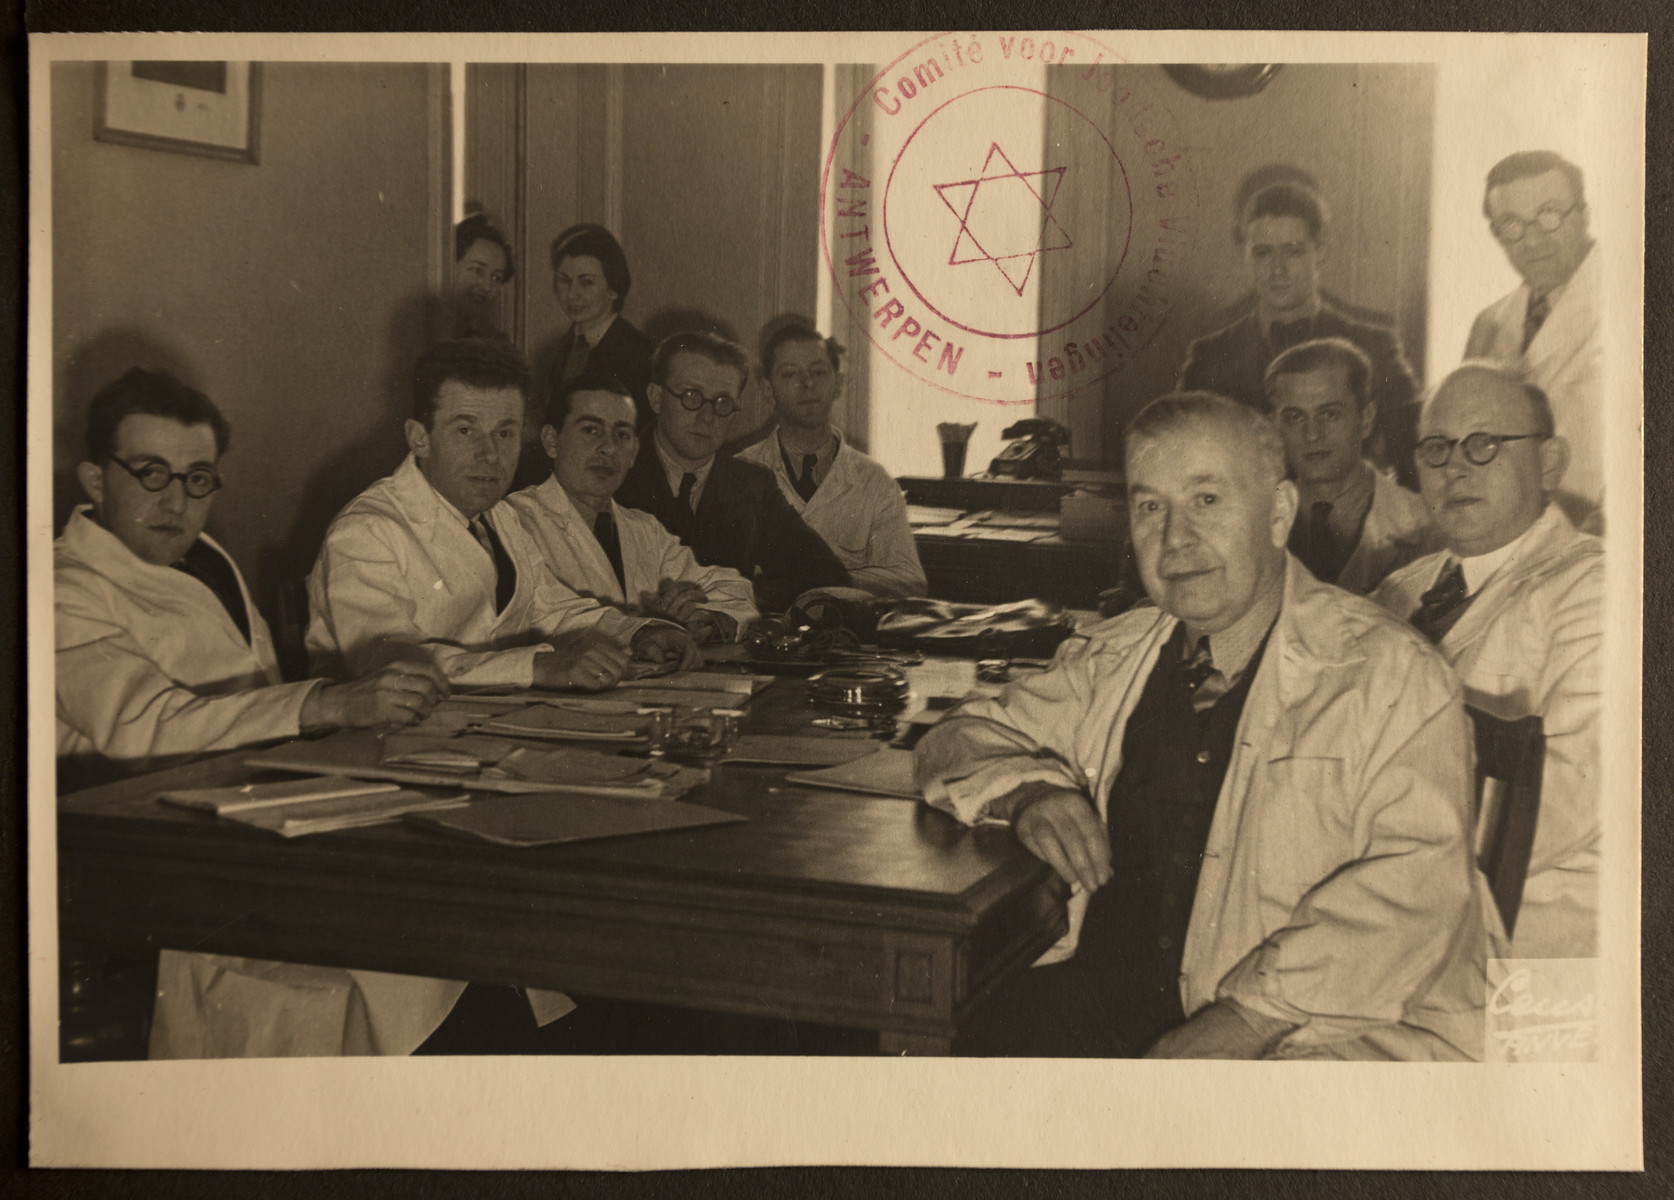 Group portrait of the medical team of the Jewish Refugee Aid Committee of Antwerp.